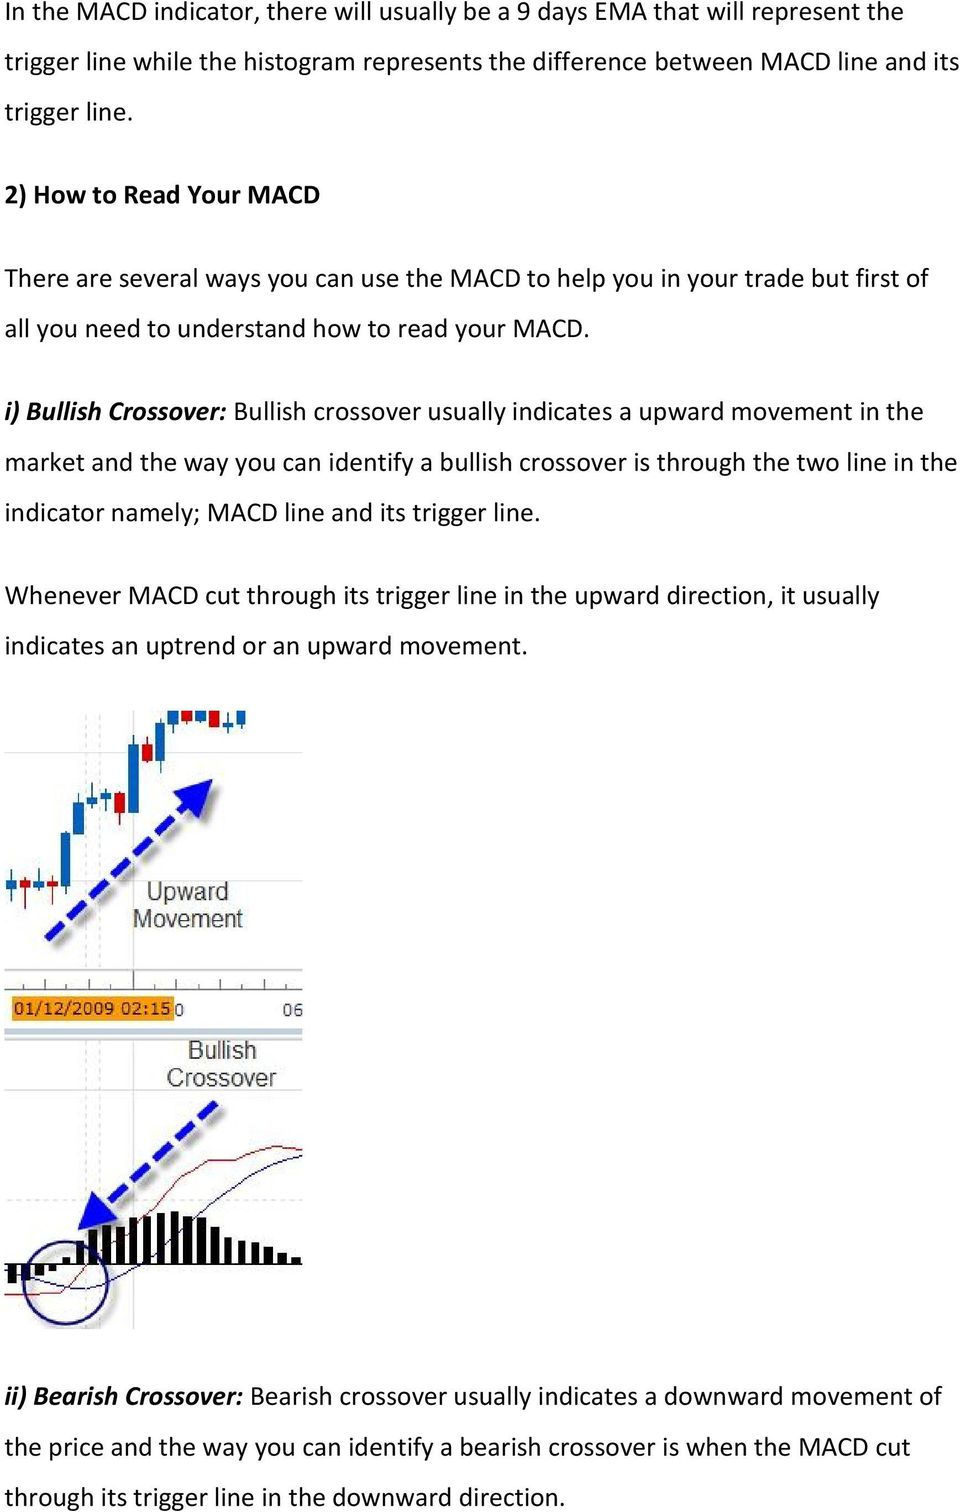 i) Bullish Crossover: Bullish crossover usually indicates a upward movement in the market and the way you can identify a bullish crossover is through the two line in the indicator namely; MACD line